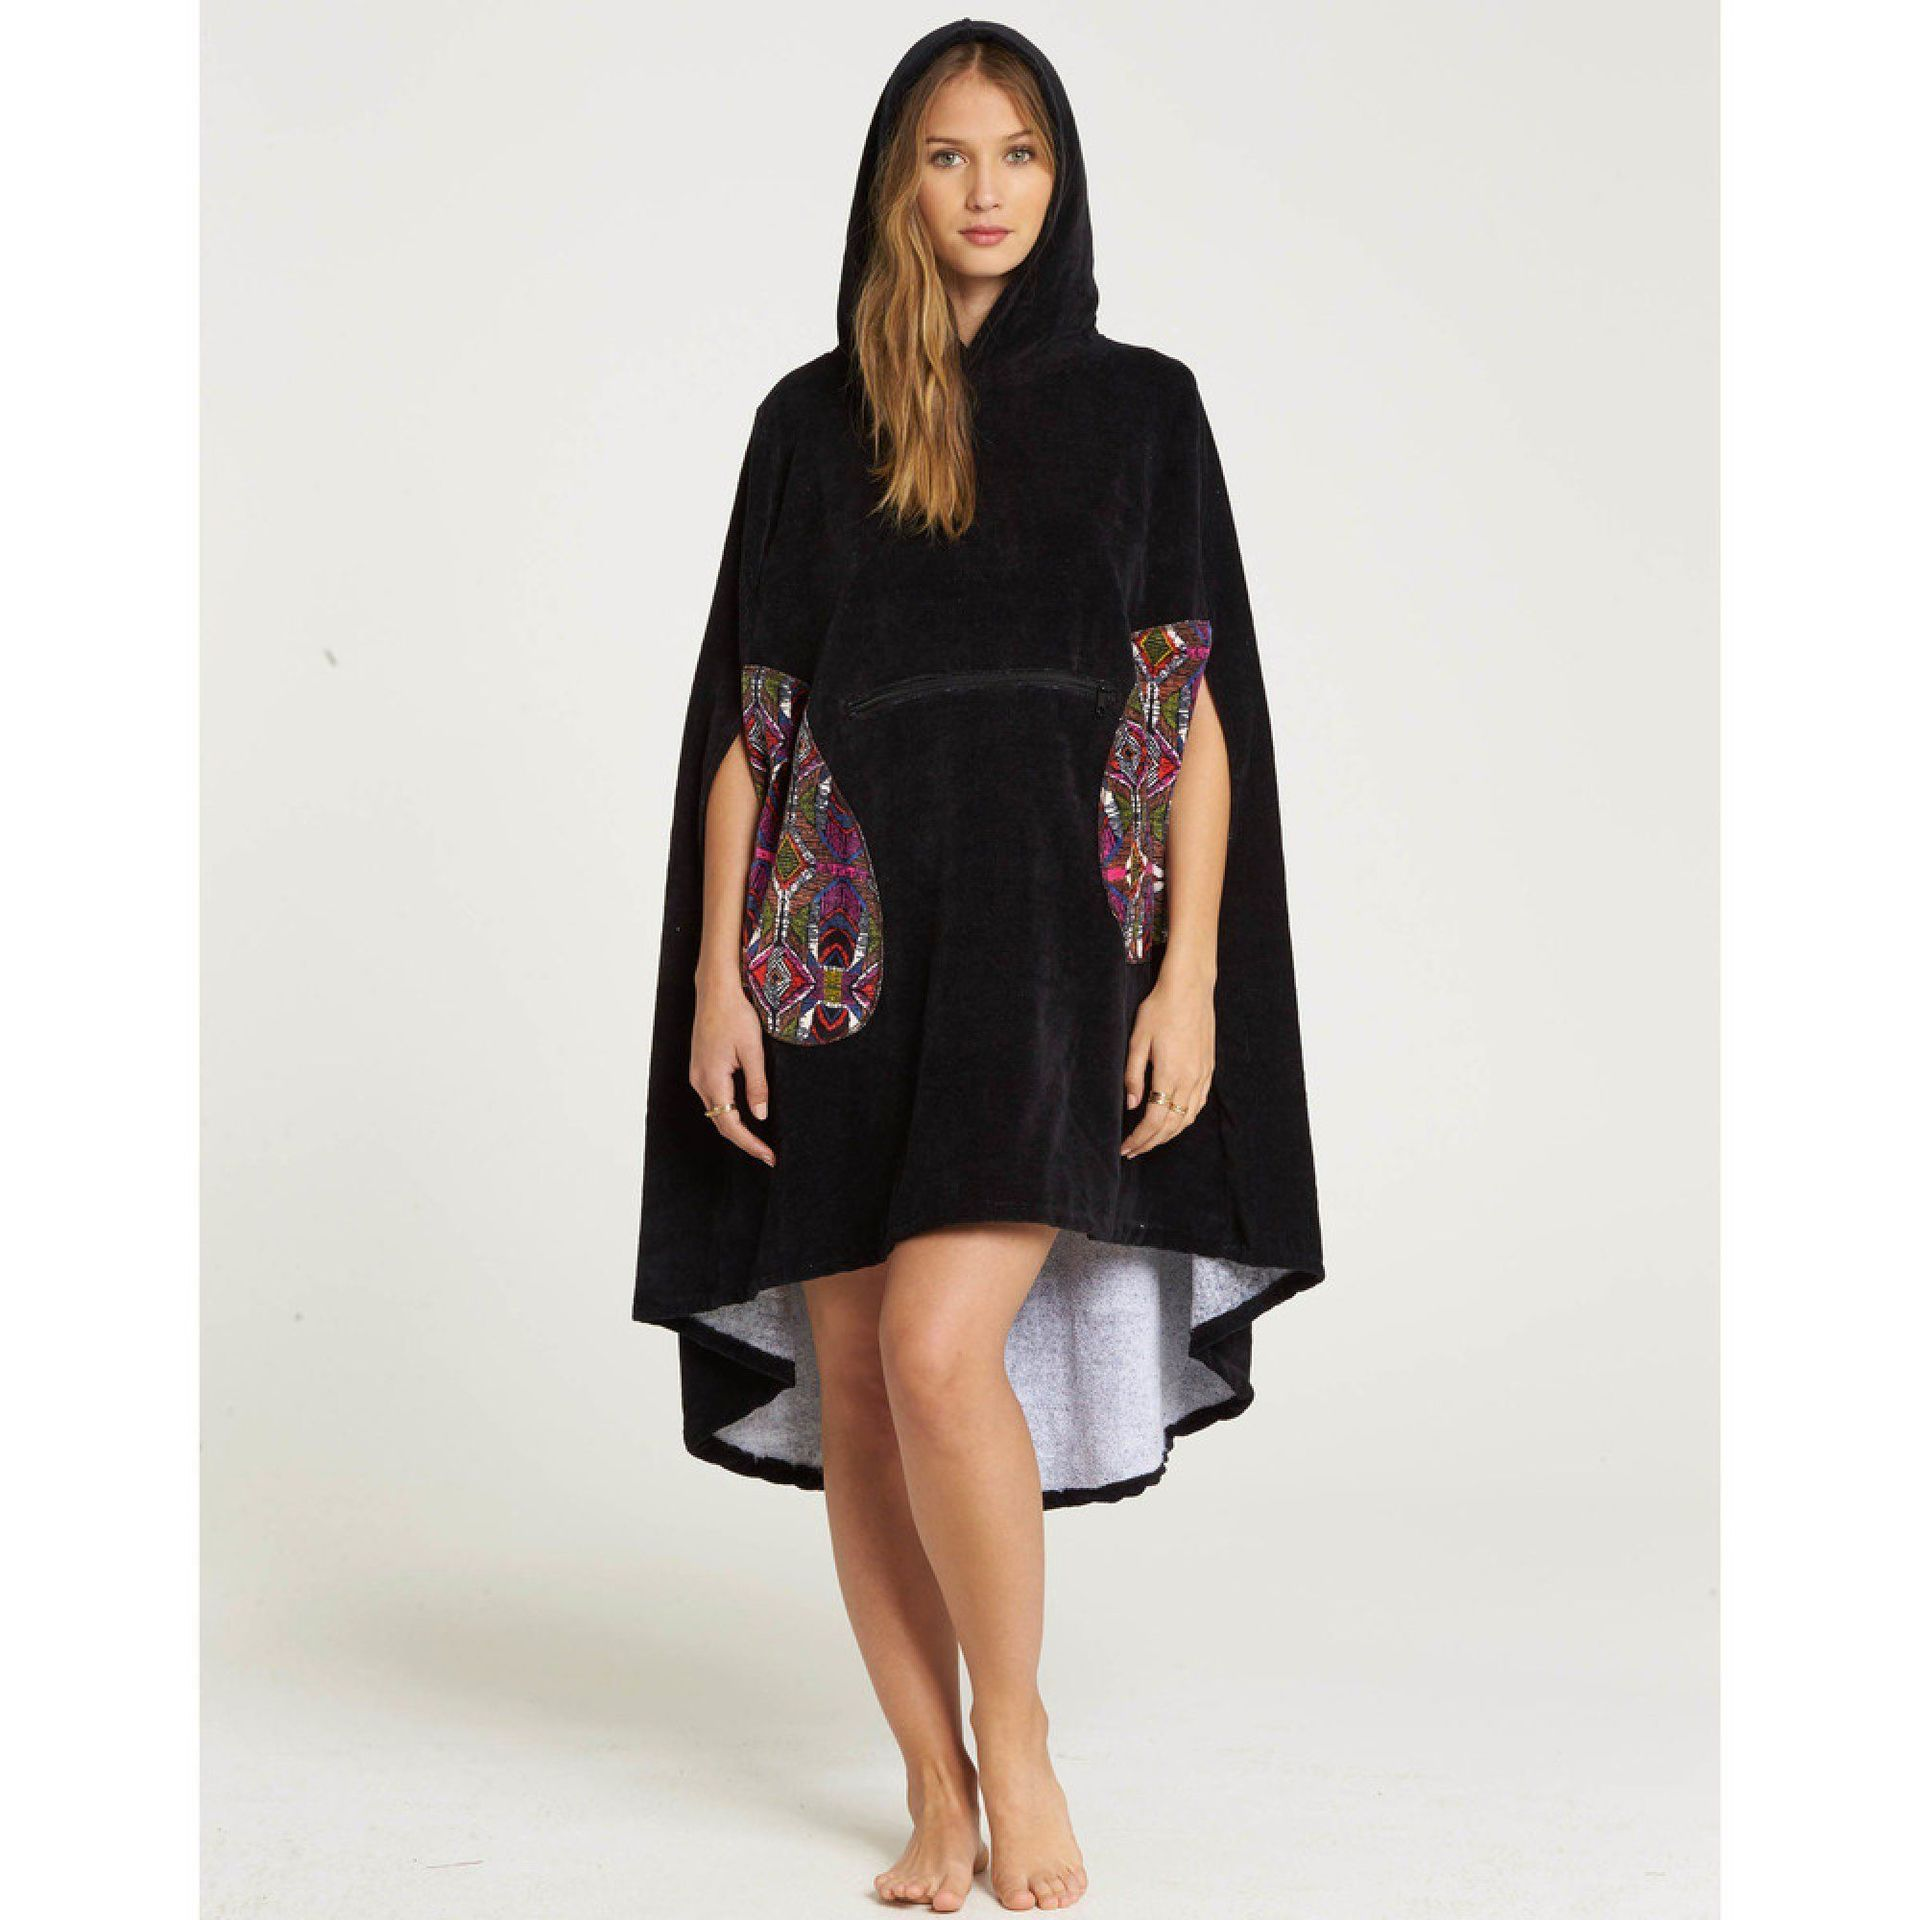 PONCHO BILLABONG HOODED TOWEL BLACK